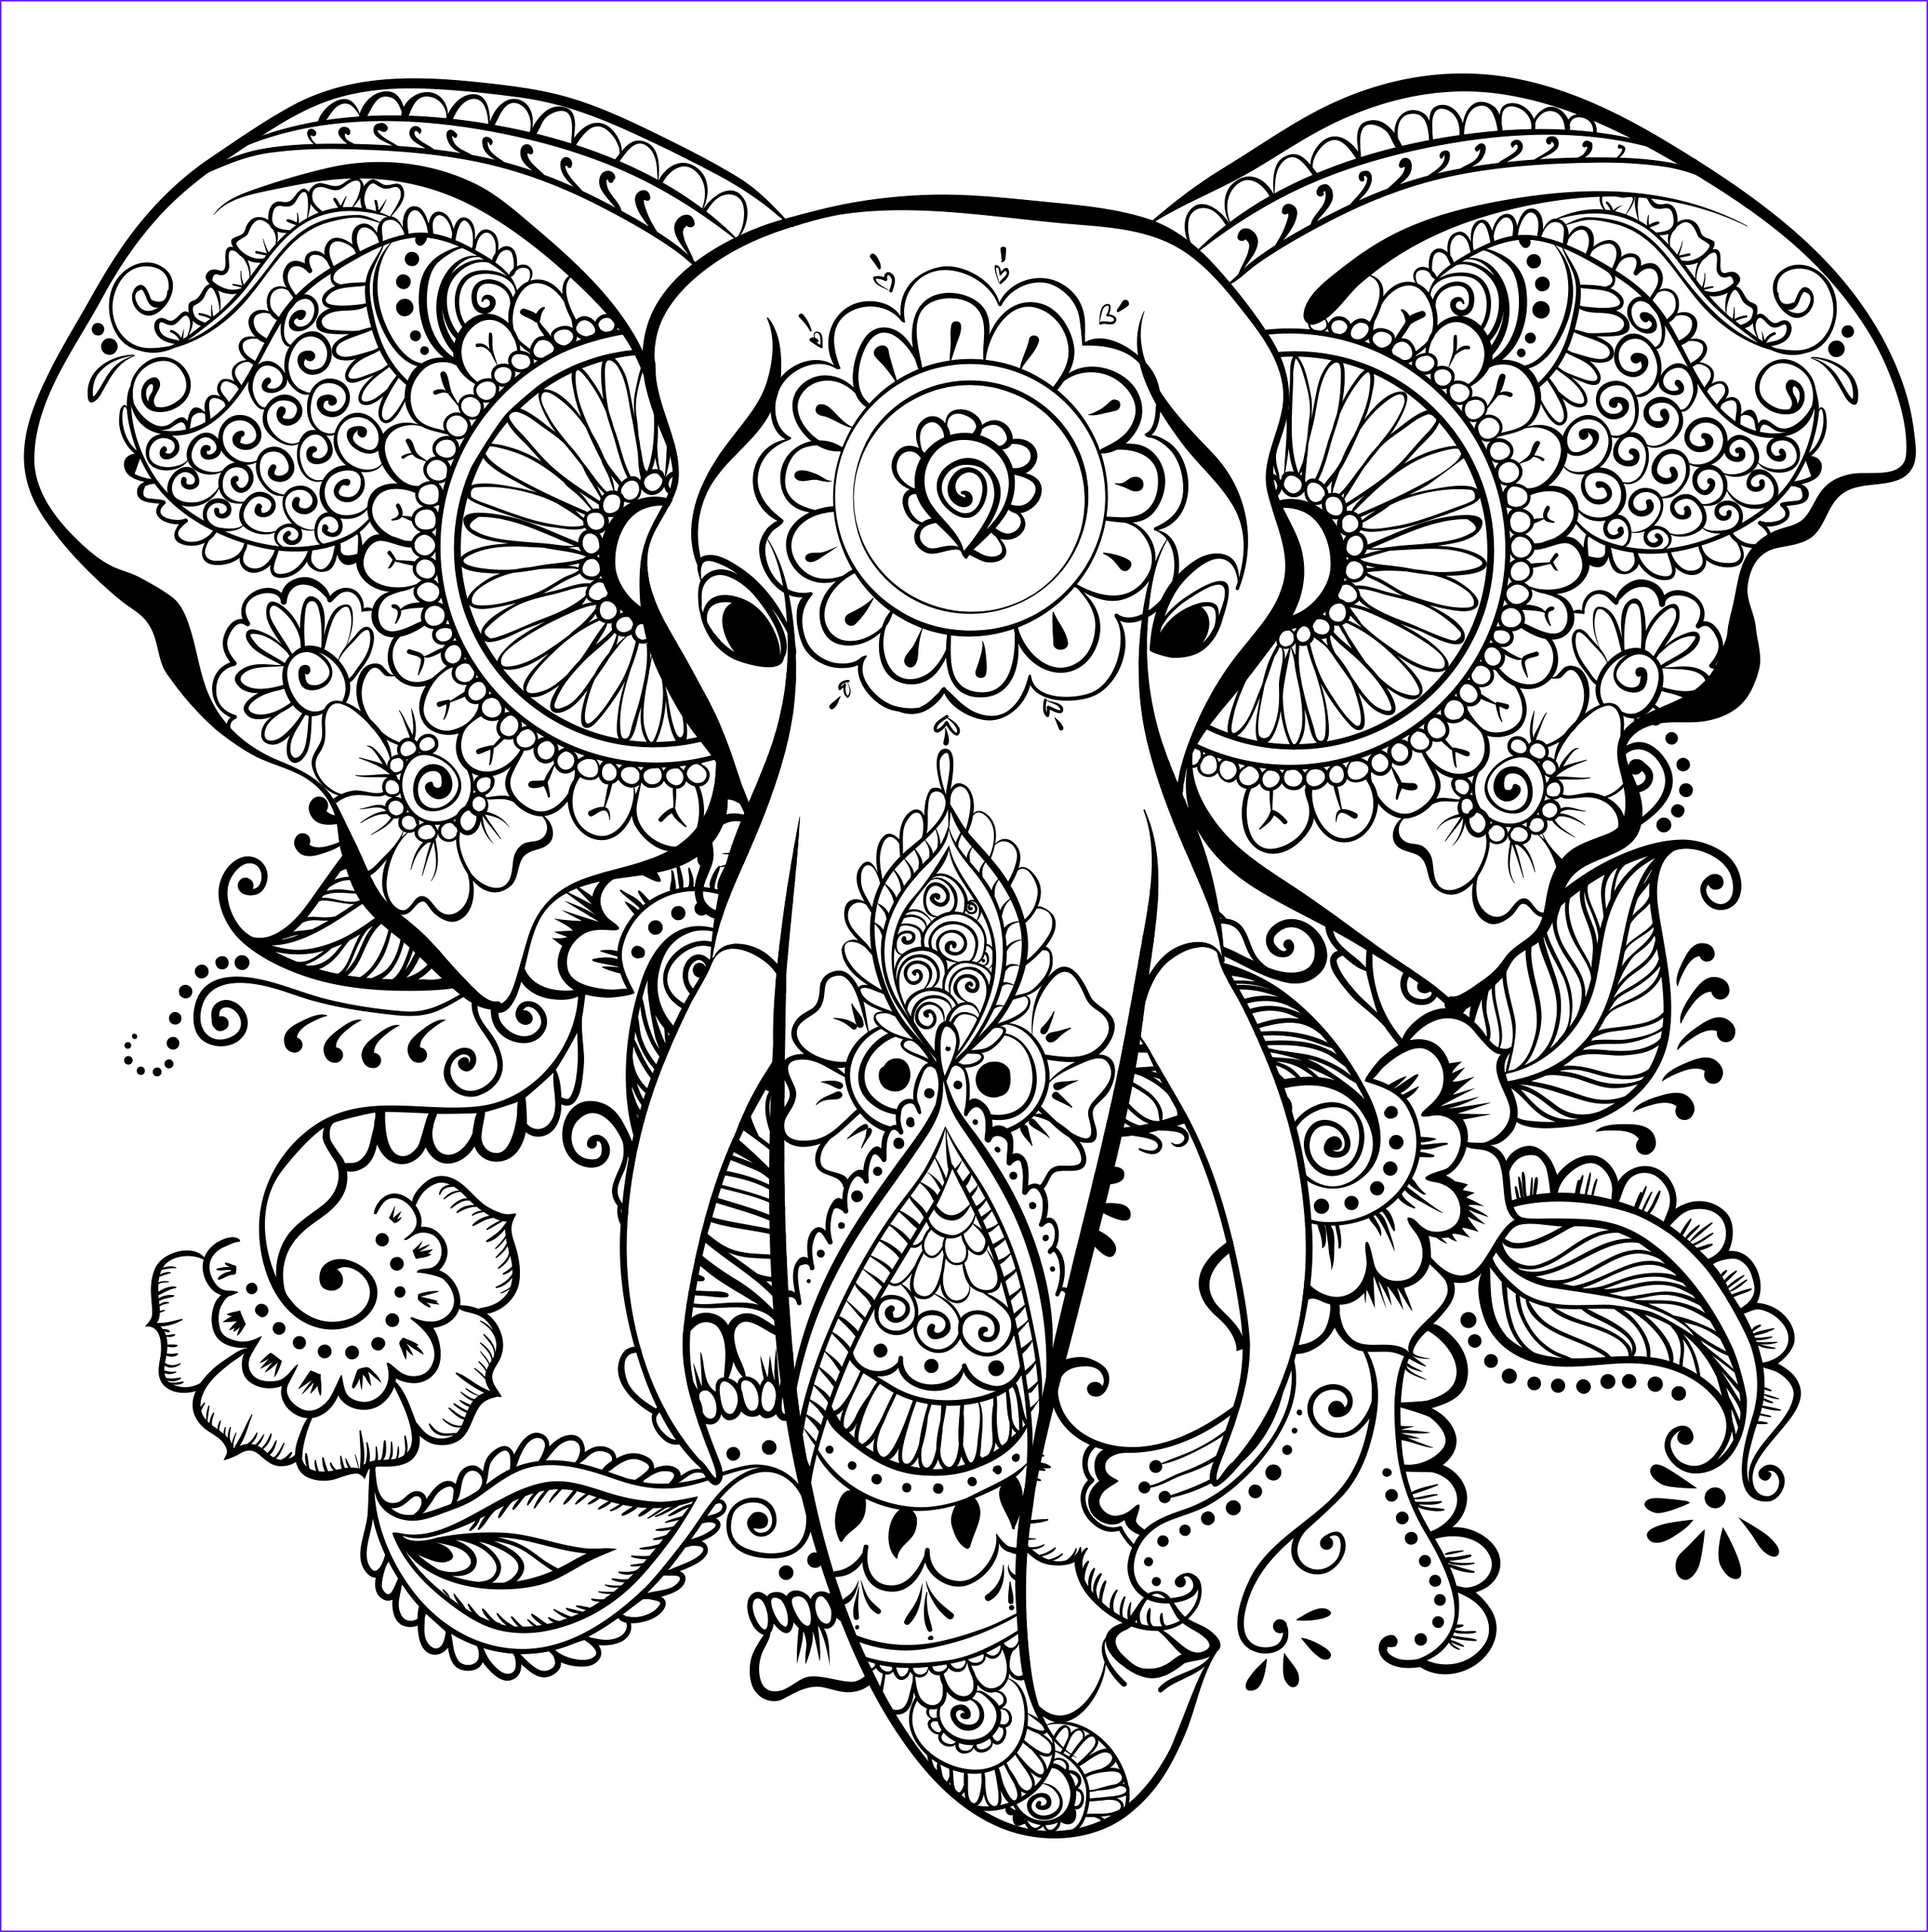 Adult Coloring Book Printable Awesome Photos 63 Adult Coloring Pages to Nourish Your Mental Visual